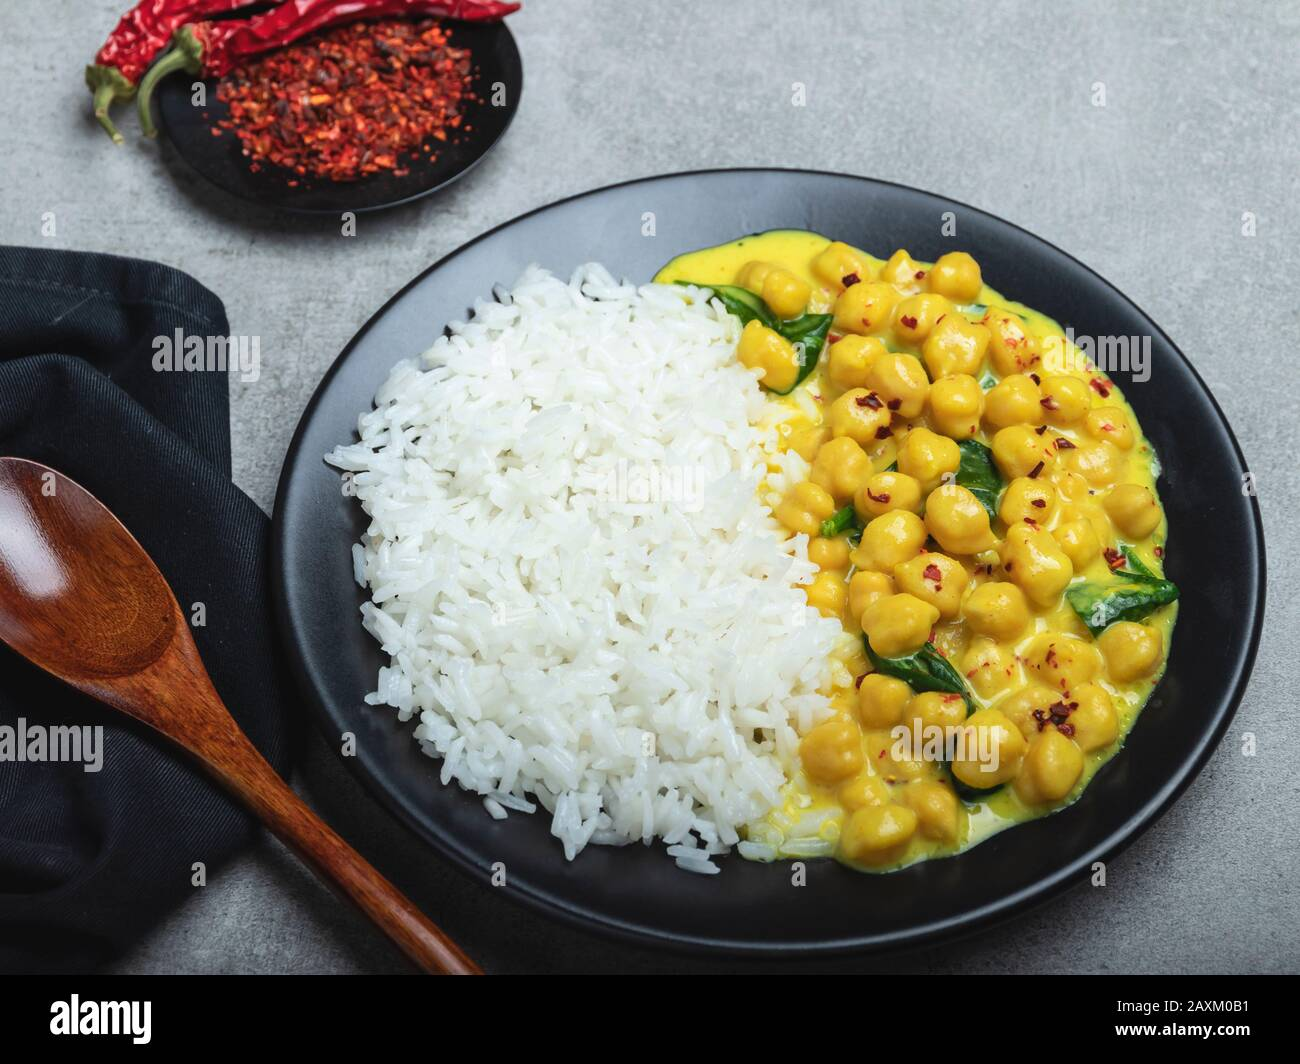 rice, chickpeas with coconut milk and curry. vegetarian dish Stock Photo